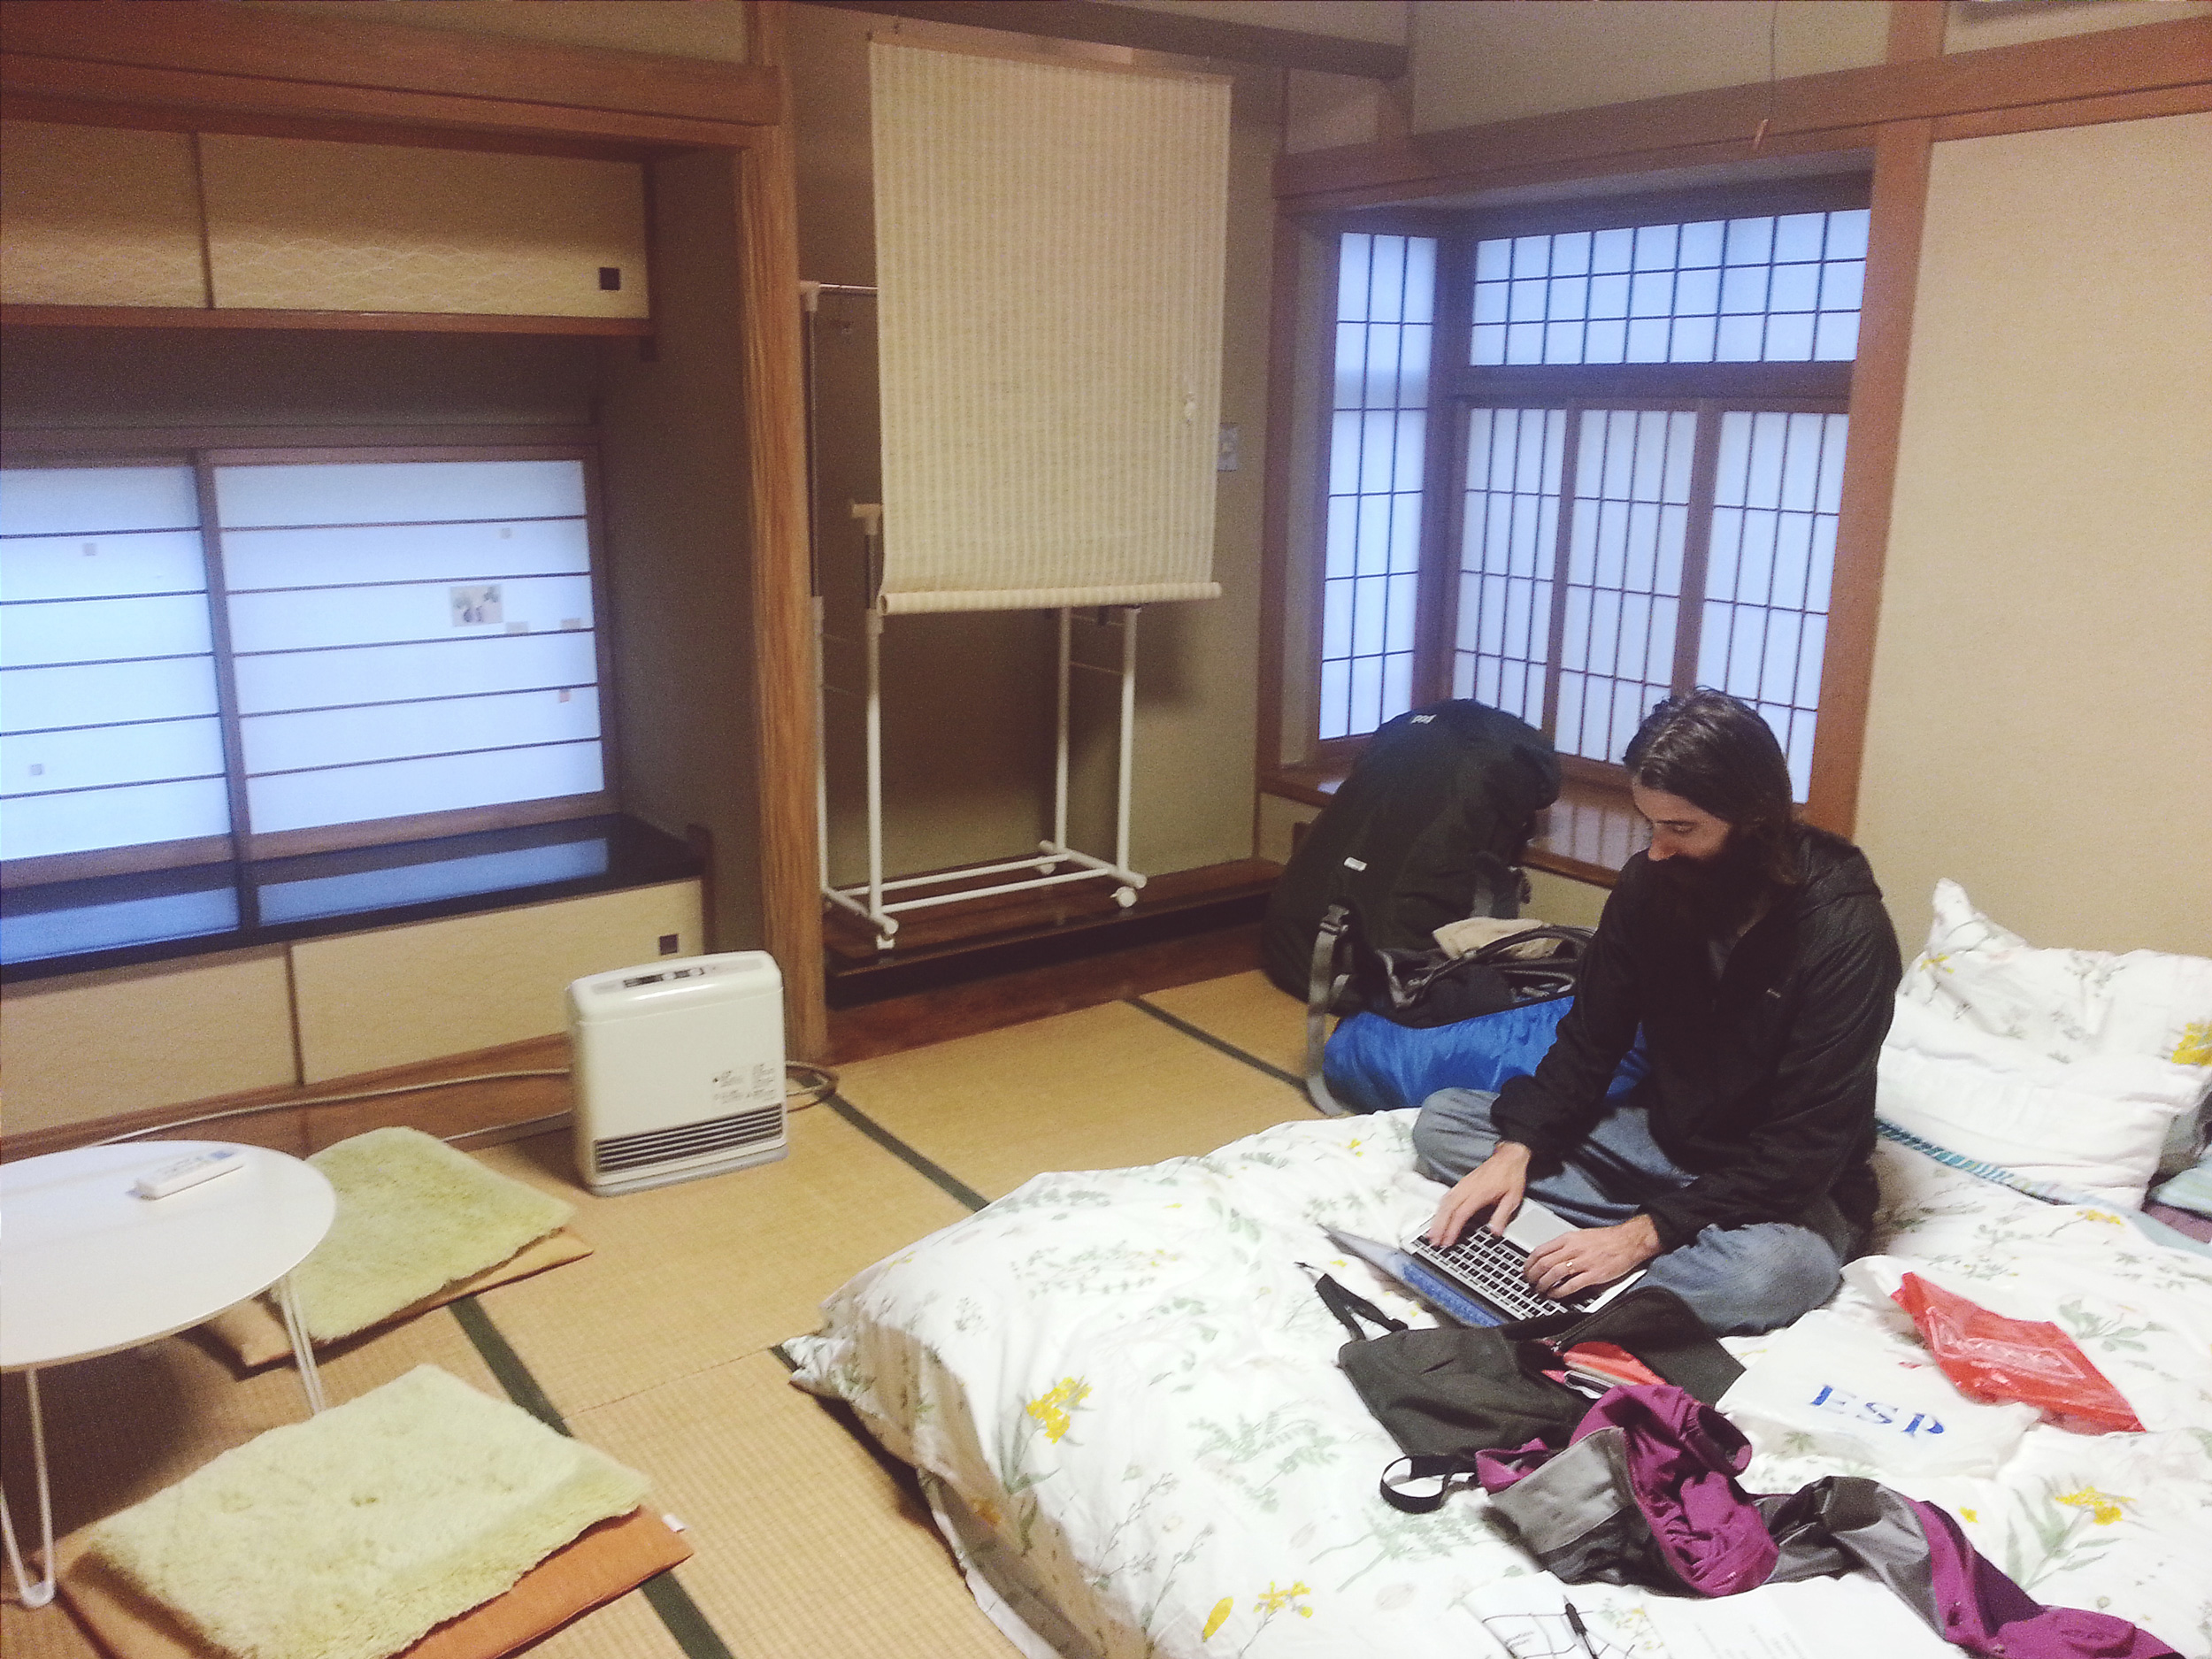 Private Tatami Room in a Yoga Teacher's house. $33 night / 25 minutes from Shibuya station